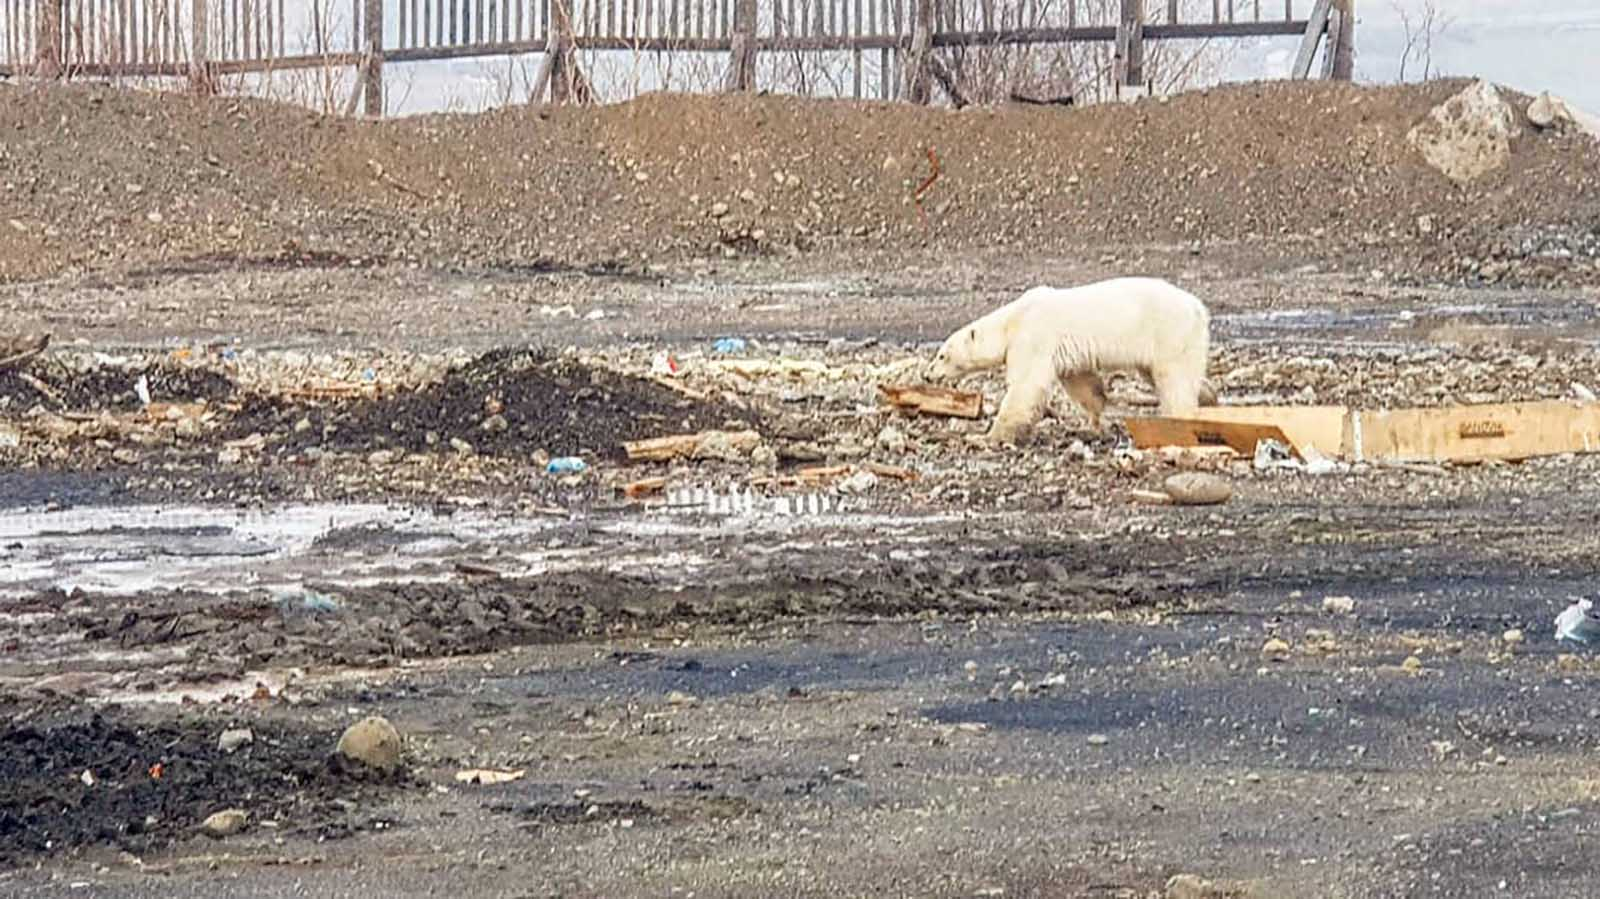 Polar bears have been forced to travel farther to find food, as sea ice continues to melt due to climate change. (Credit: Oleg Krashevsky/@putoranatour/Instagram via CNN Wire)